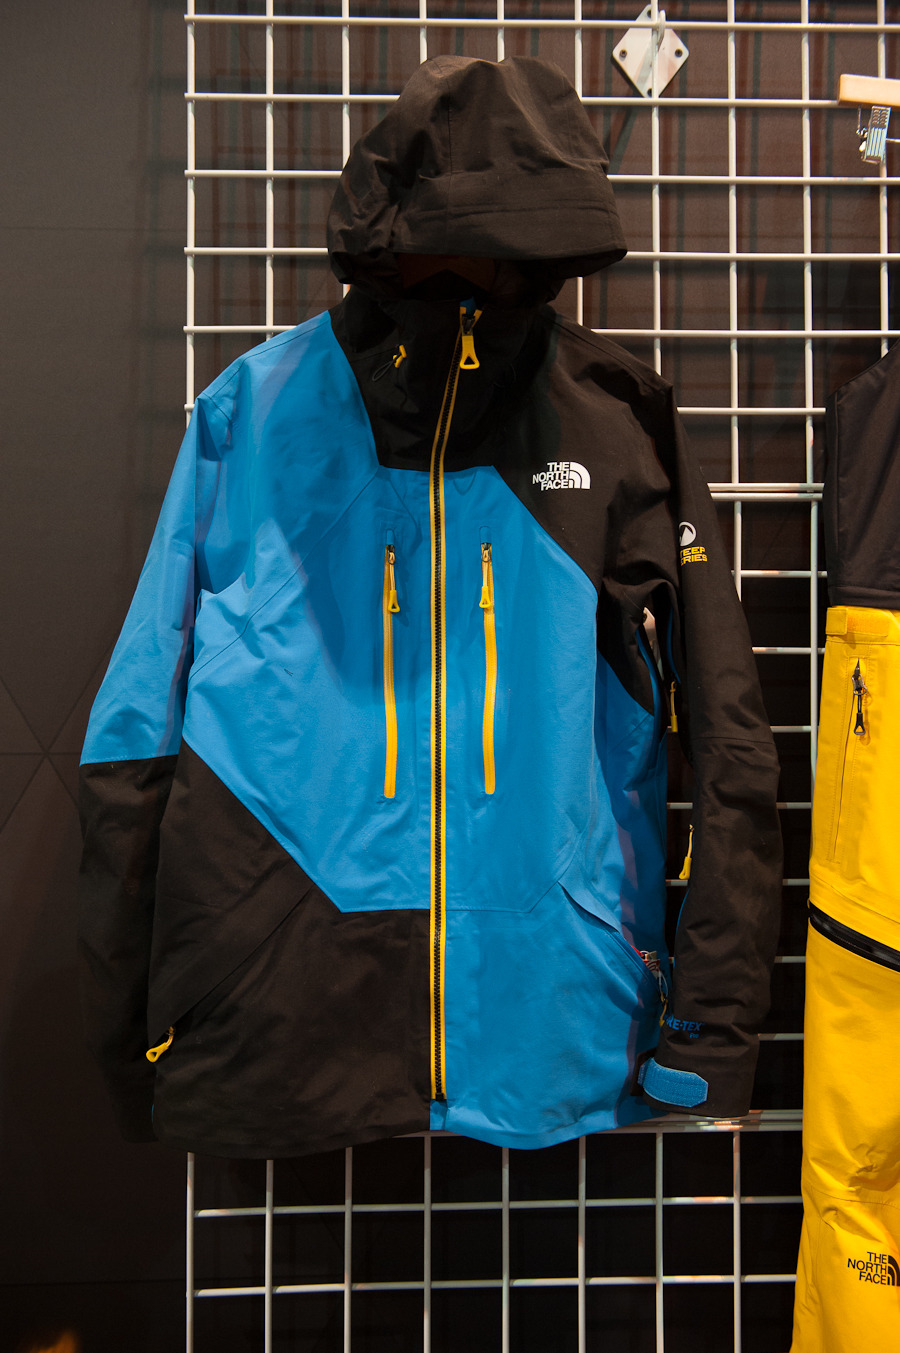 The Freethinker Jacket from the North Face.